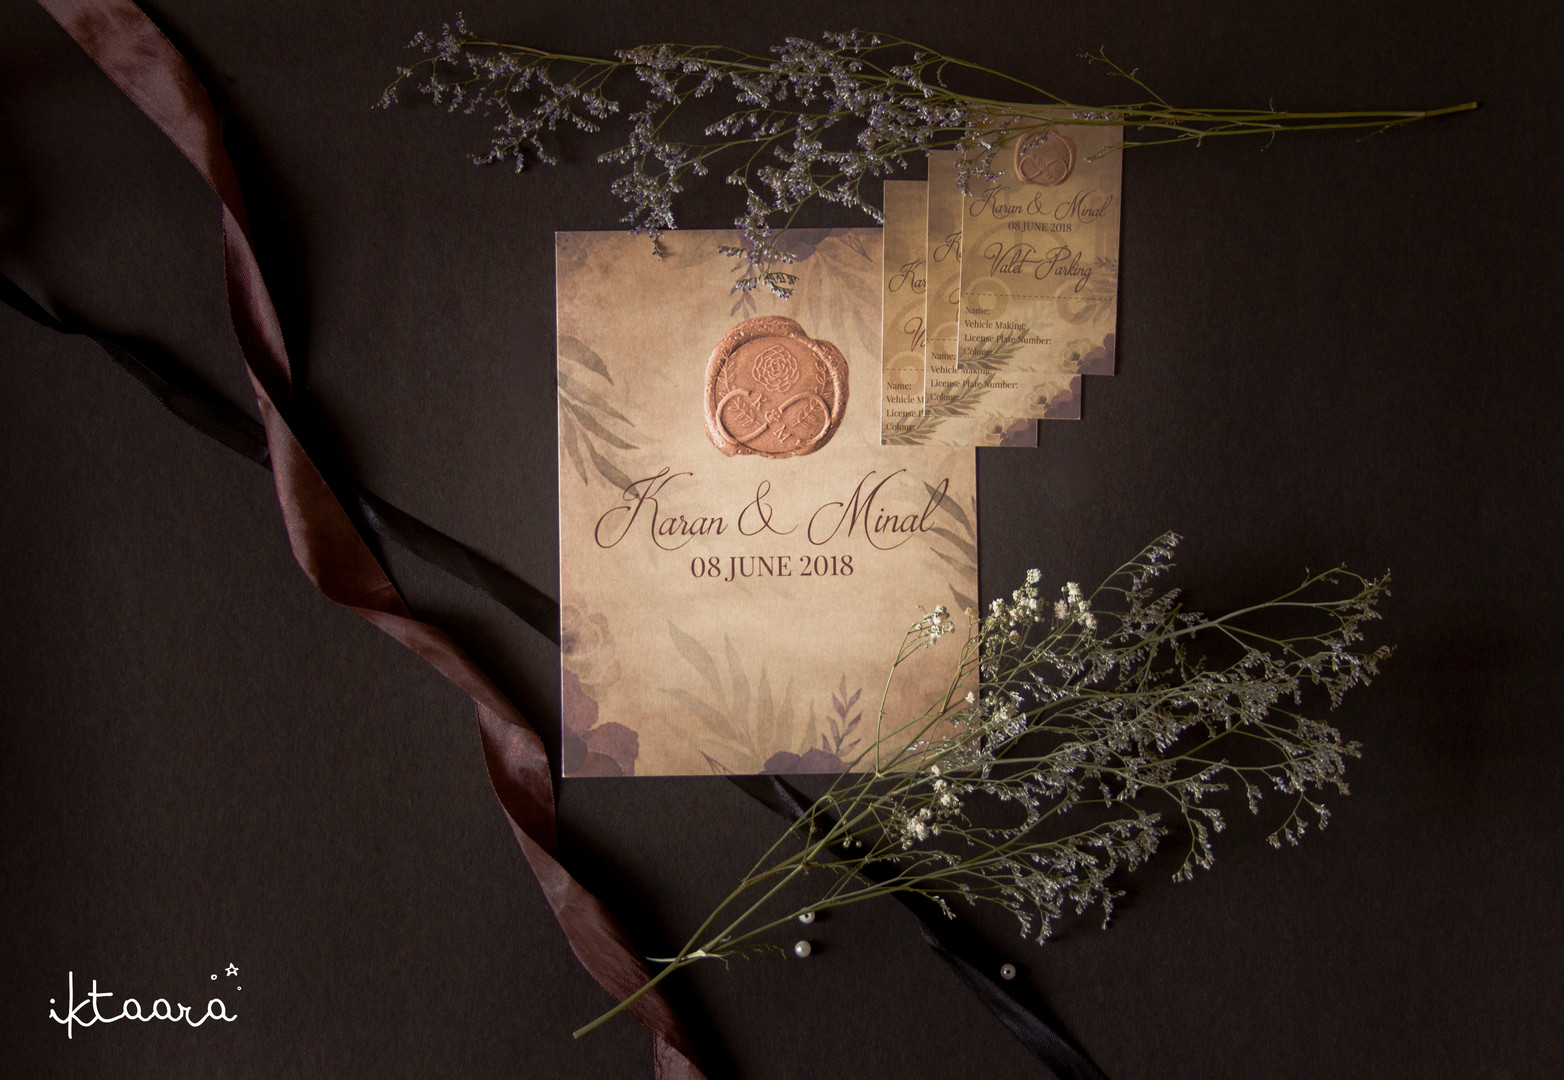 A Rustic Themed Wedding Invite